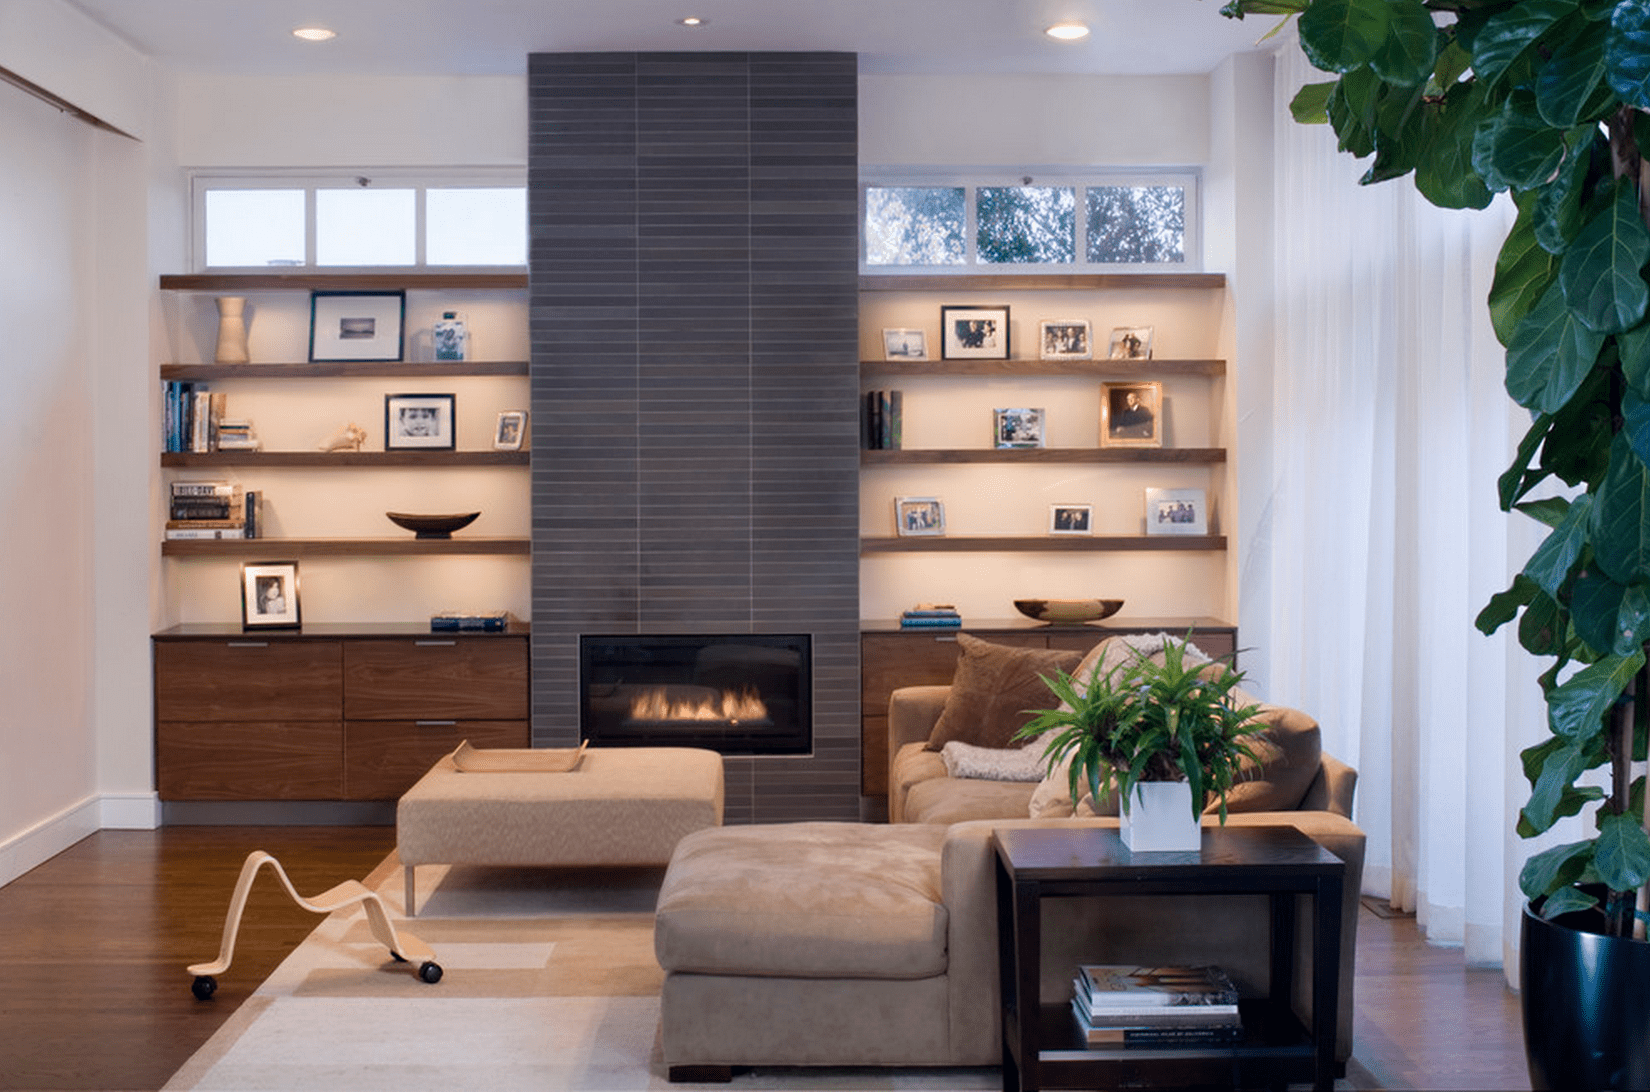 Floor to ceiling fireplace feature with built-in shelving